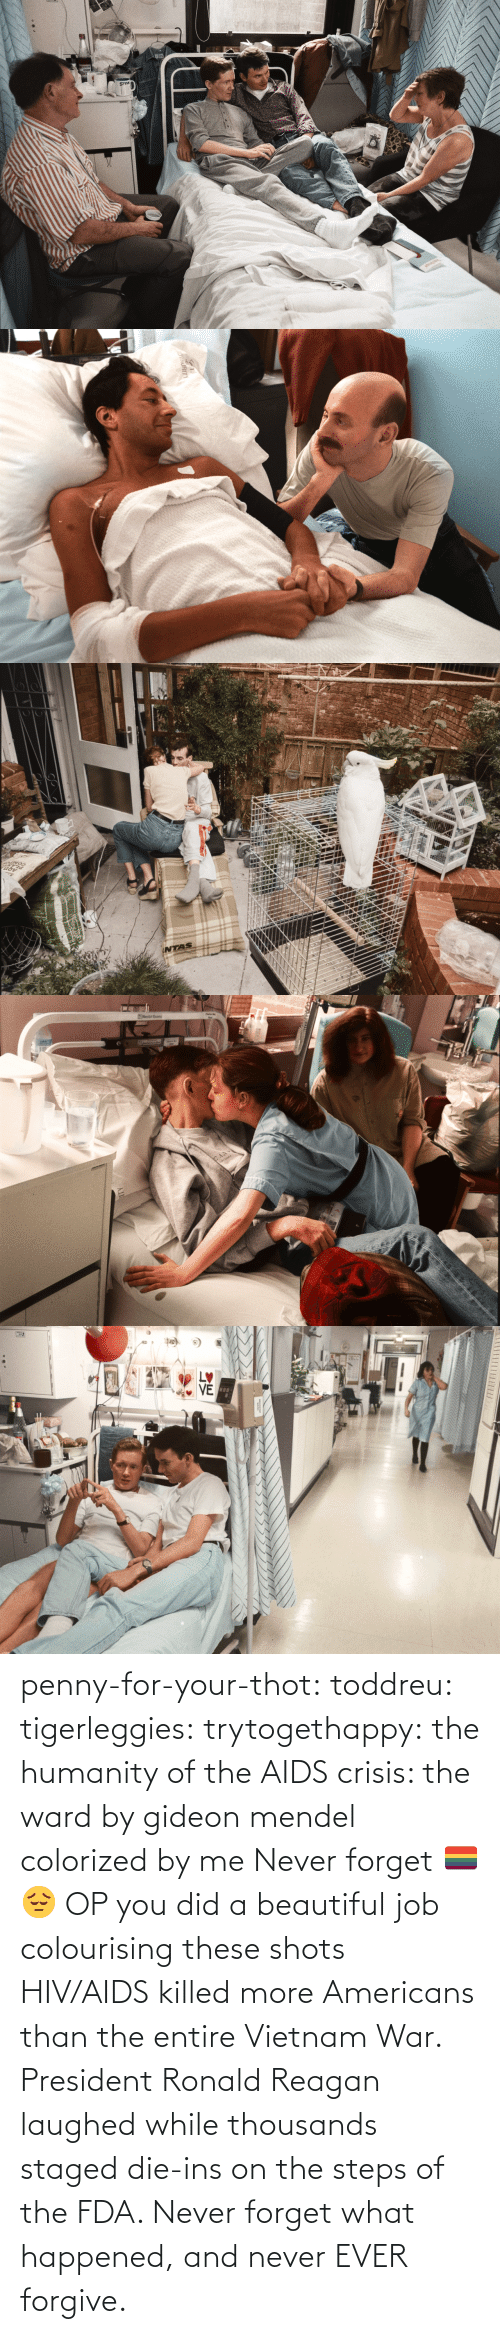 penny: STVE  yboagt   INTAS   ENesbit Evans  CAN   LETTI penny-for-your-thot: toddreu:  tigerleggies:  trytogethappy:  the humanity of the AIDS crisis: the ward by gideon mendel colorized by me   Never forget 🏳️‍🌈😔   OP you did a beautiful job colourising these shots   HIV/AIDS killed more Americans than the entire Vietnam War. President Ronald Reagan laughed while thousands staged die-ins on the steps of the FDA. Never forget what happened, and never EVER forgive.